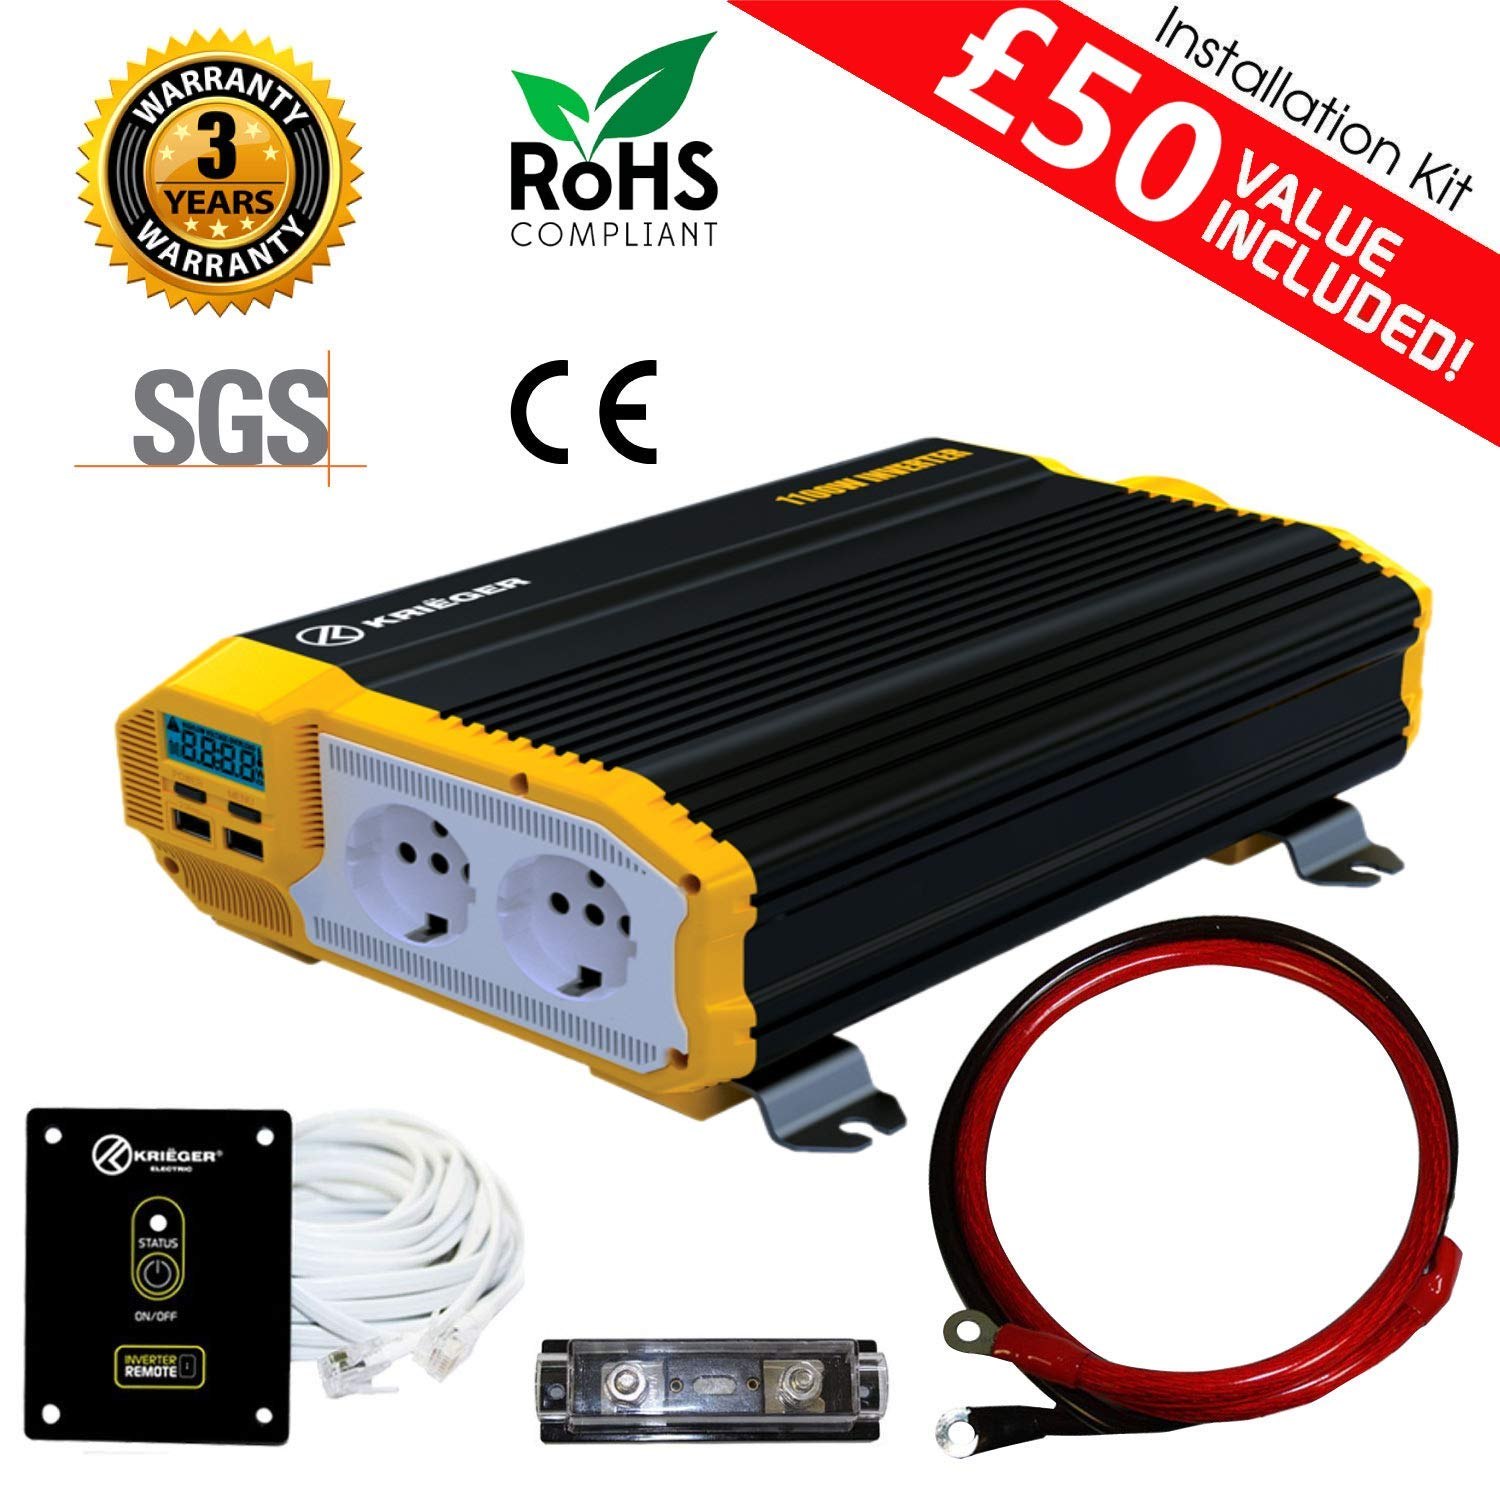 Certification CE par SGS t/él/écommande Inclus. Kri/ëger convertisseur//onduleur de Tension Onde sinuso/ïdale modifi/ée Kit d/'Installation transforme du 12V CD /à 220V CA 1100 Watt